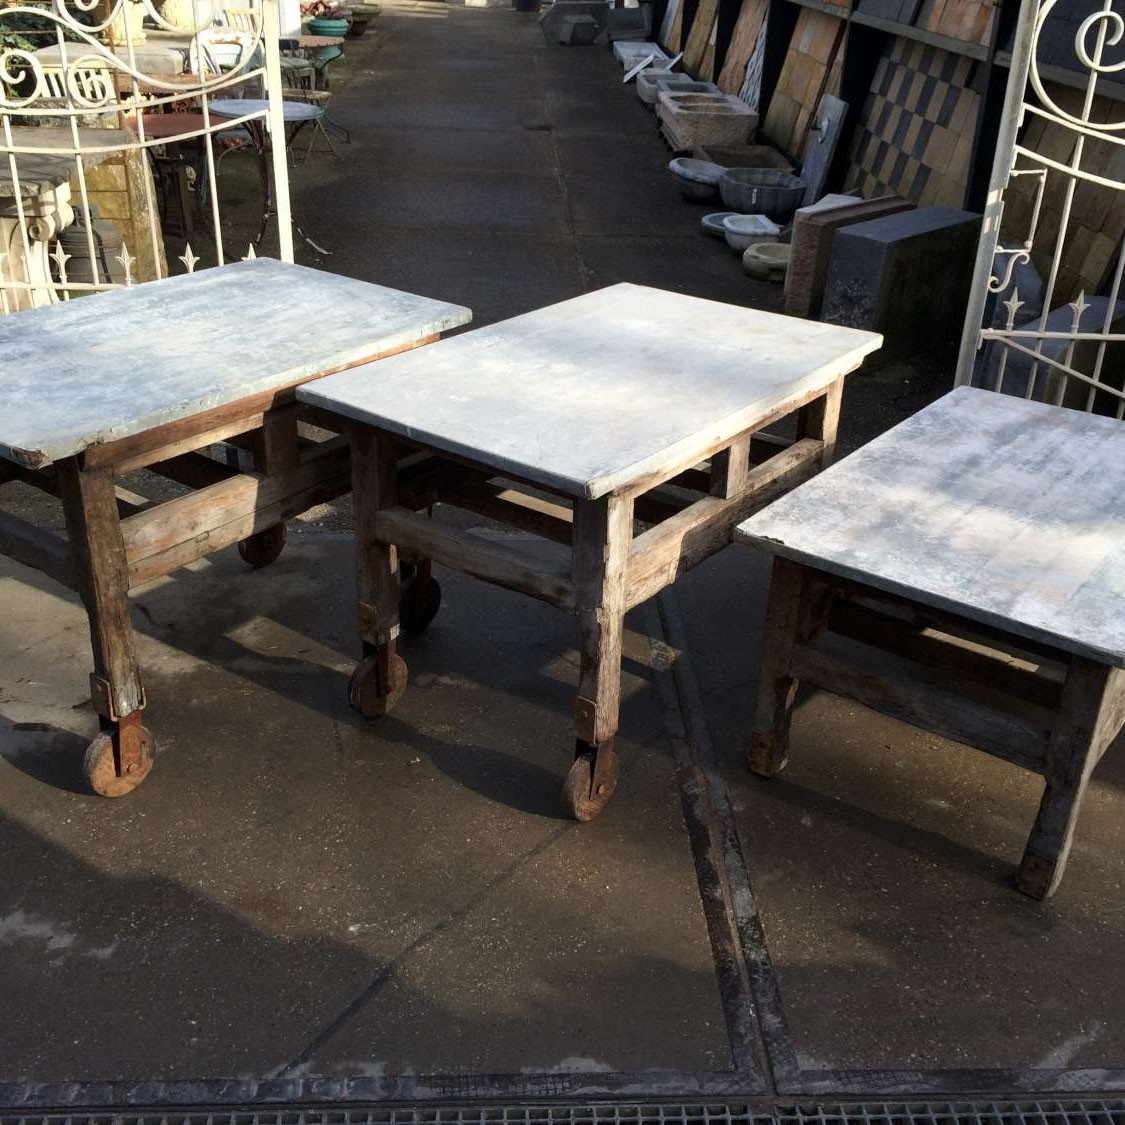 Work tables with a zinc top